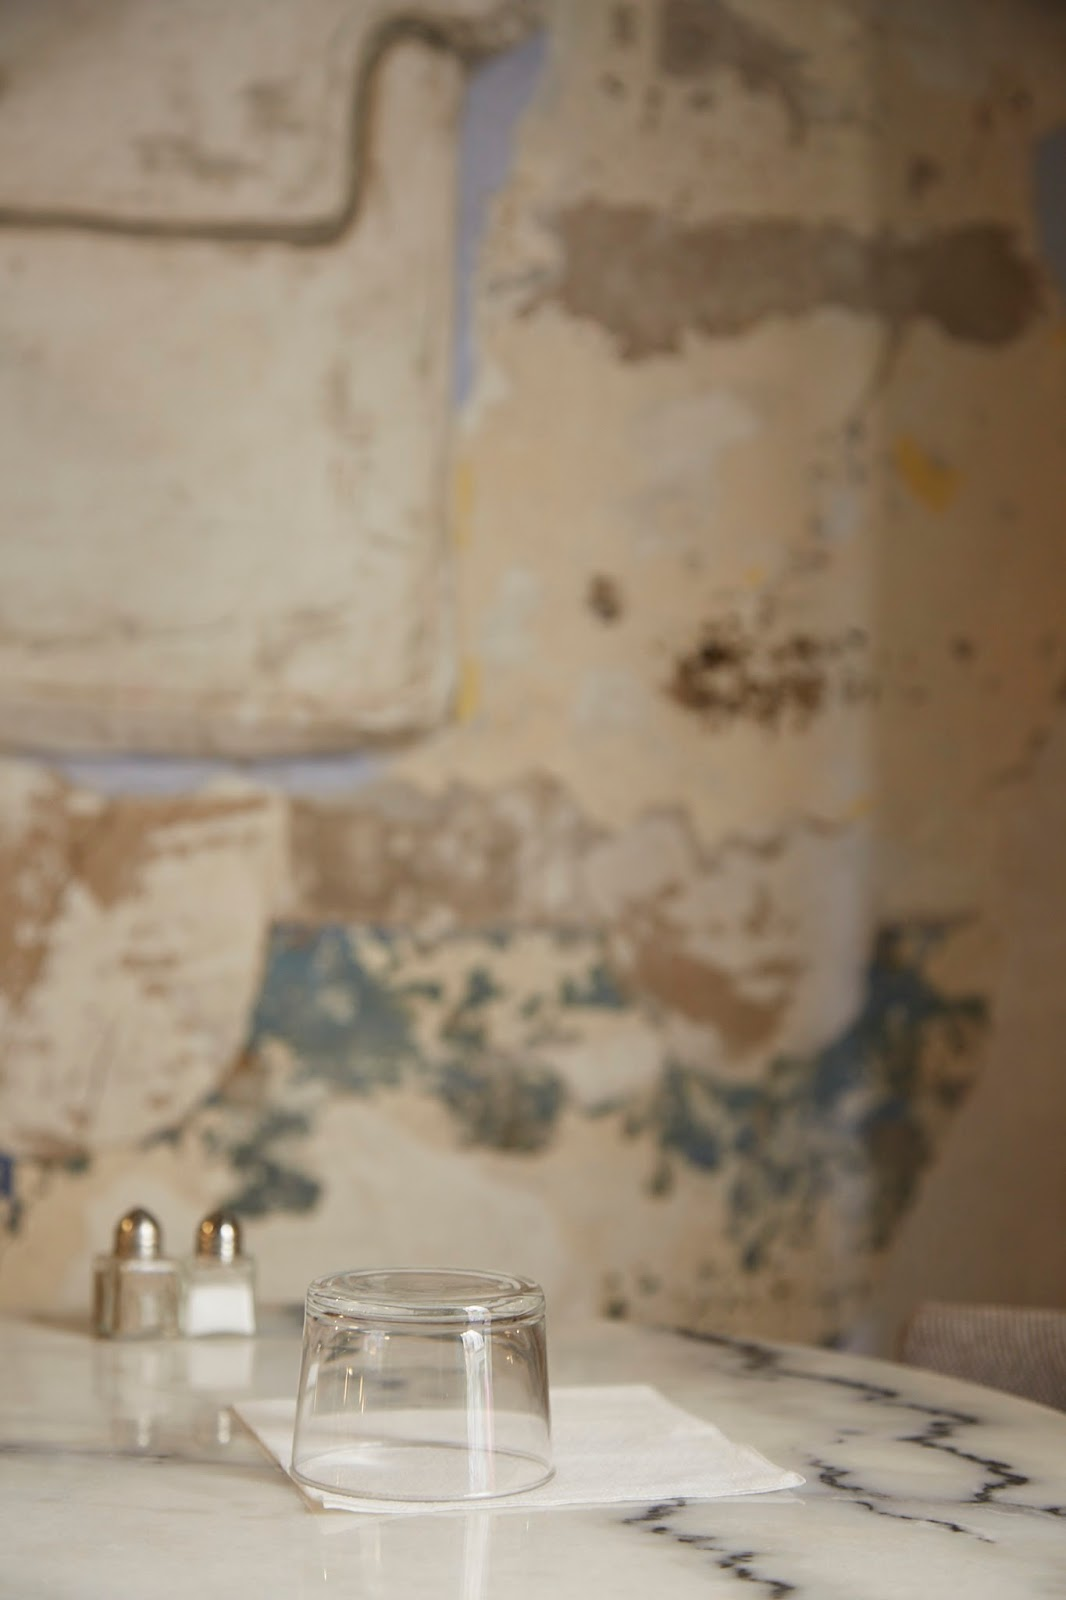 grain de sable, marseille, france, eco city guide, conscious city guide, eurostar, vegan marseille, vegetarian marseille, organic marseille, bio marseille, slow food, sustainable tourism, slow living, eco food, eco restaurant, seasonal, local, rue du baignoir, belsunce, gluten-free marseille